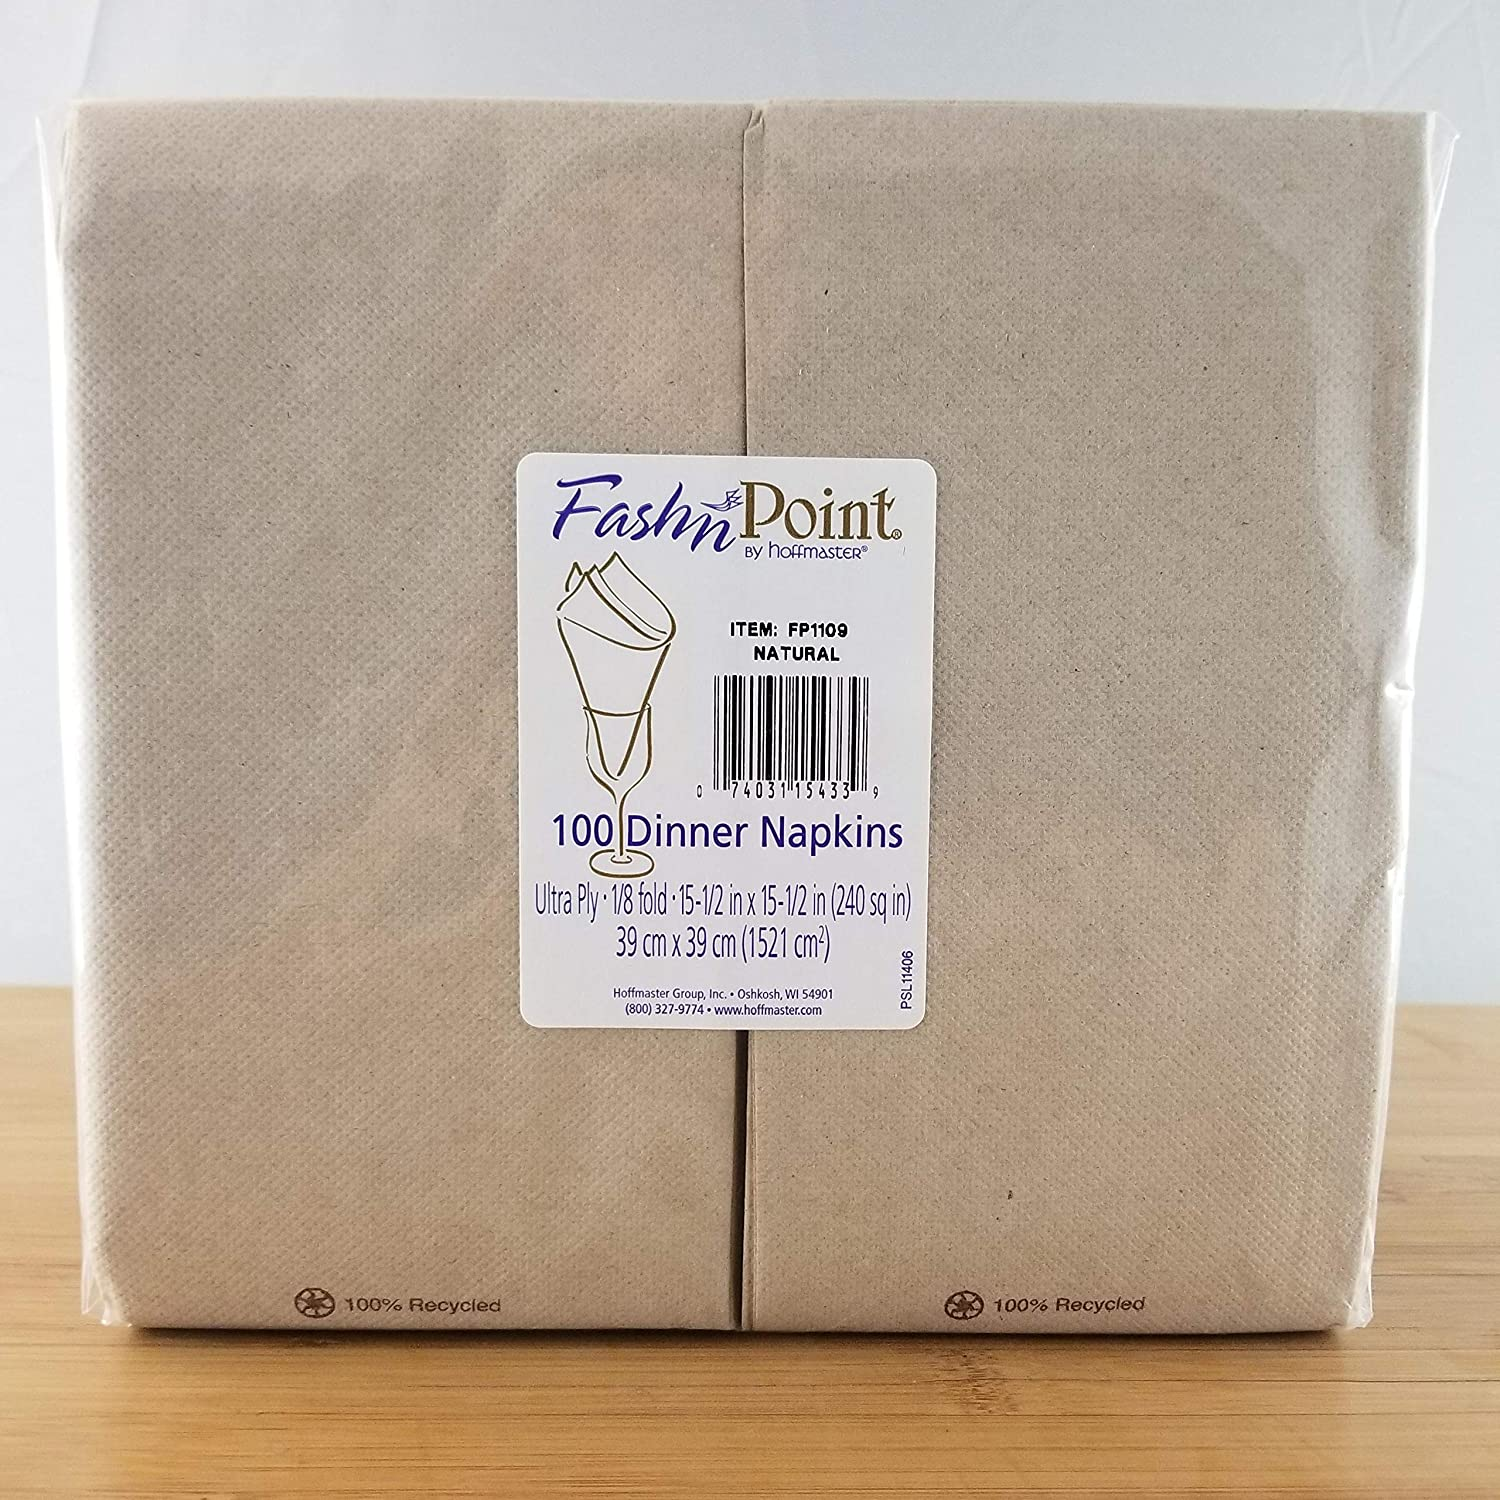 Hoffmaster FP1109 FashnPoint Natural Dinner Napkins, 100% Recycled, 1/8 Fold, 8